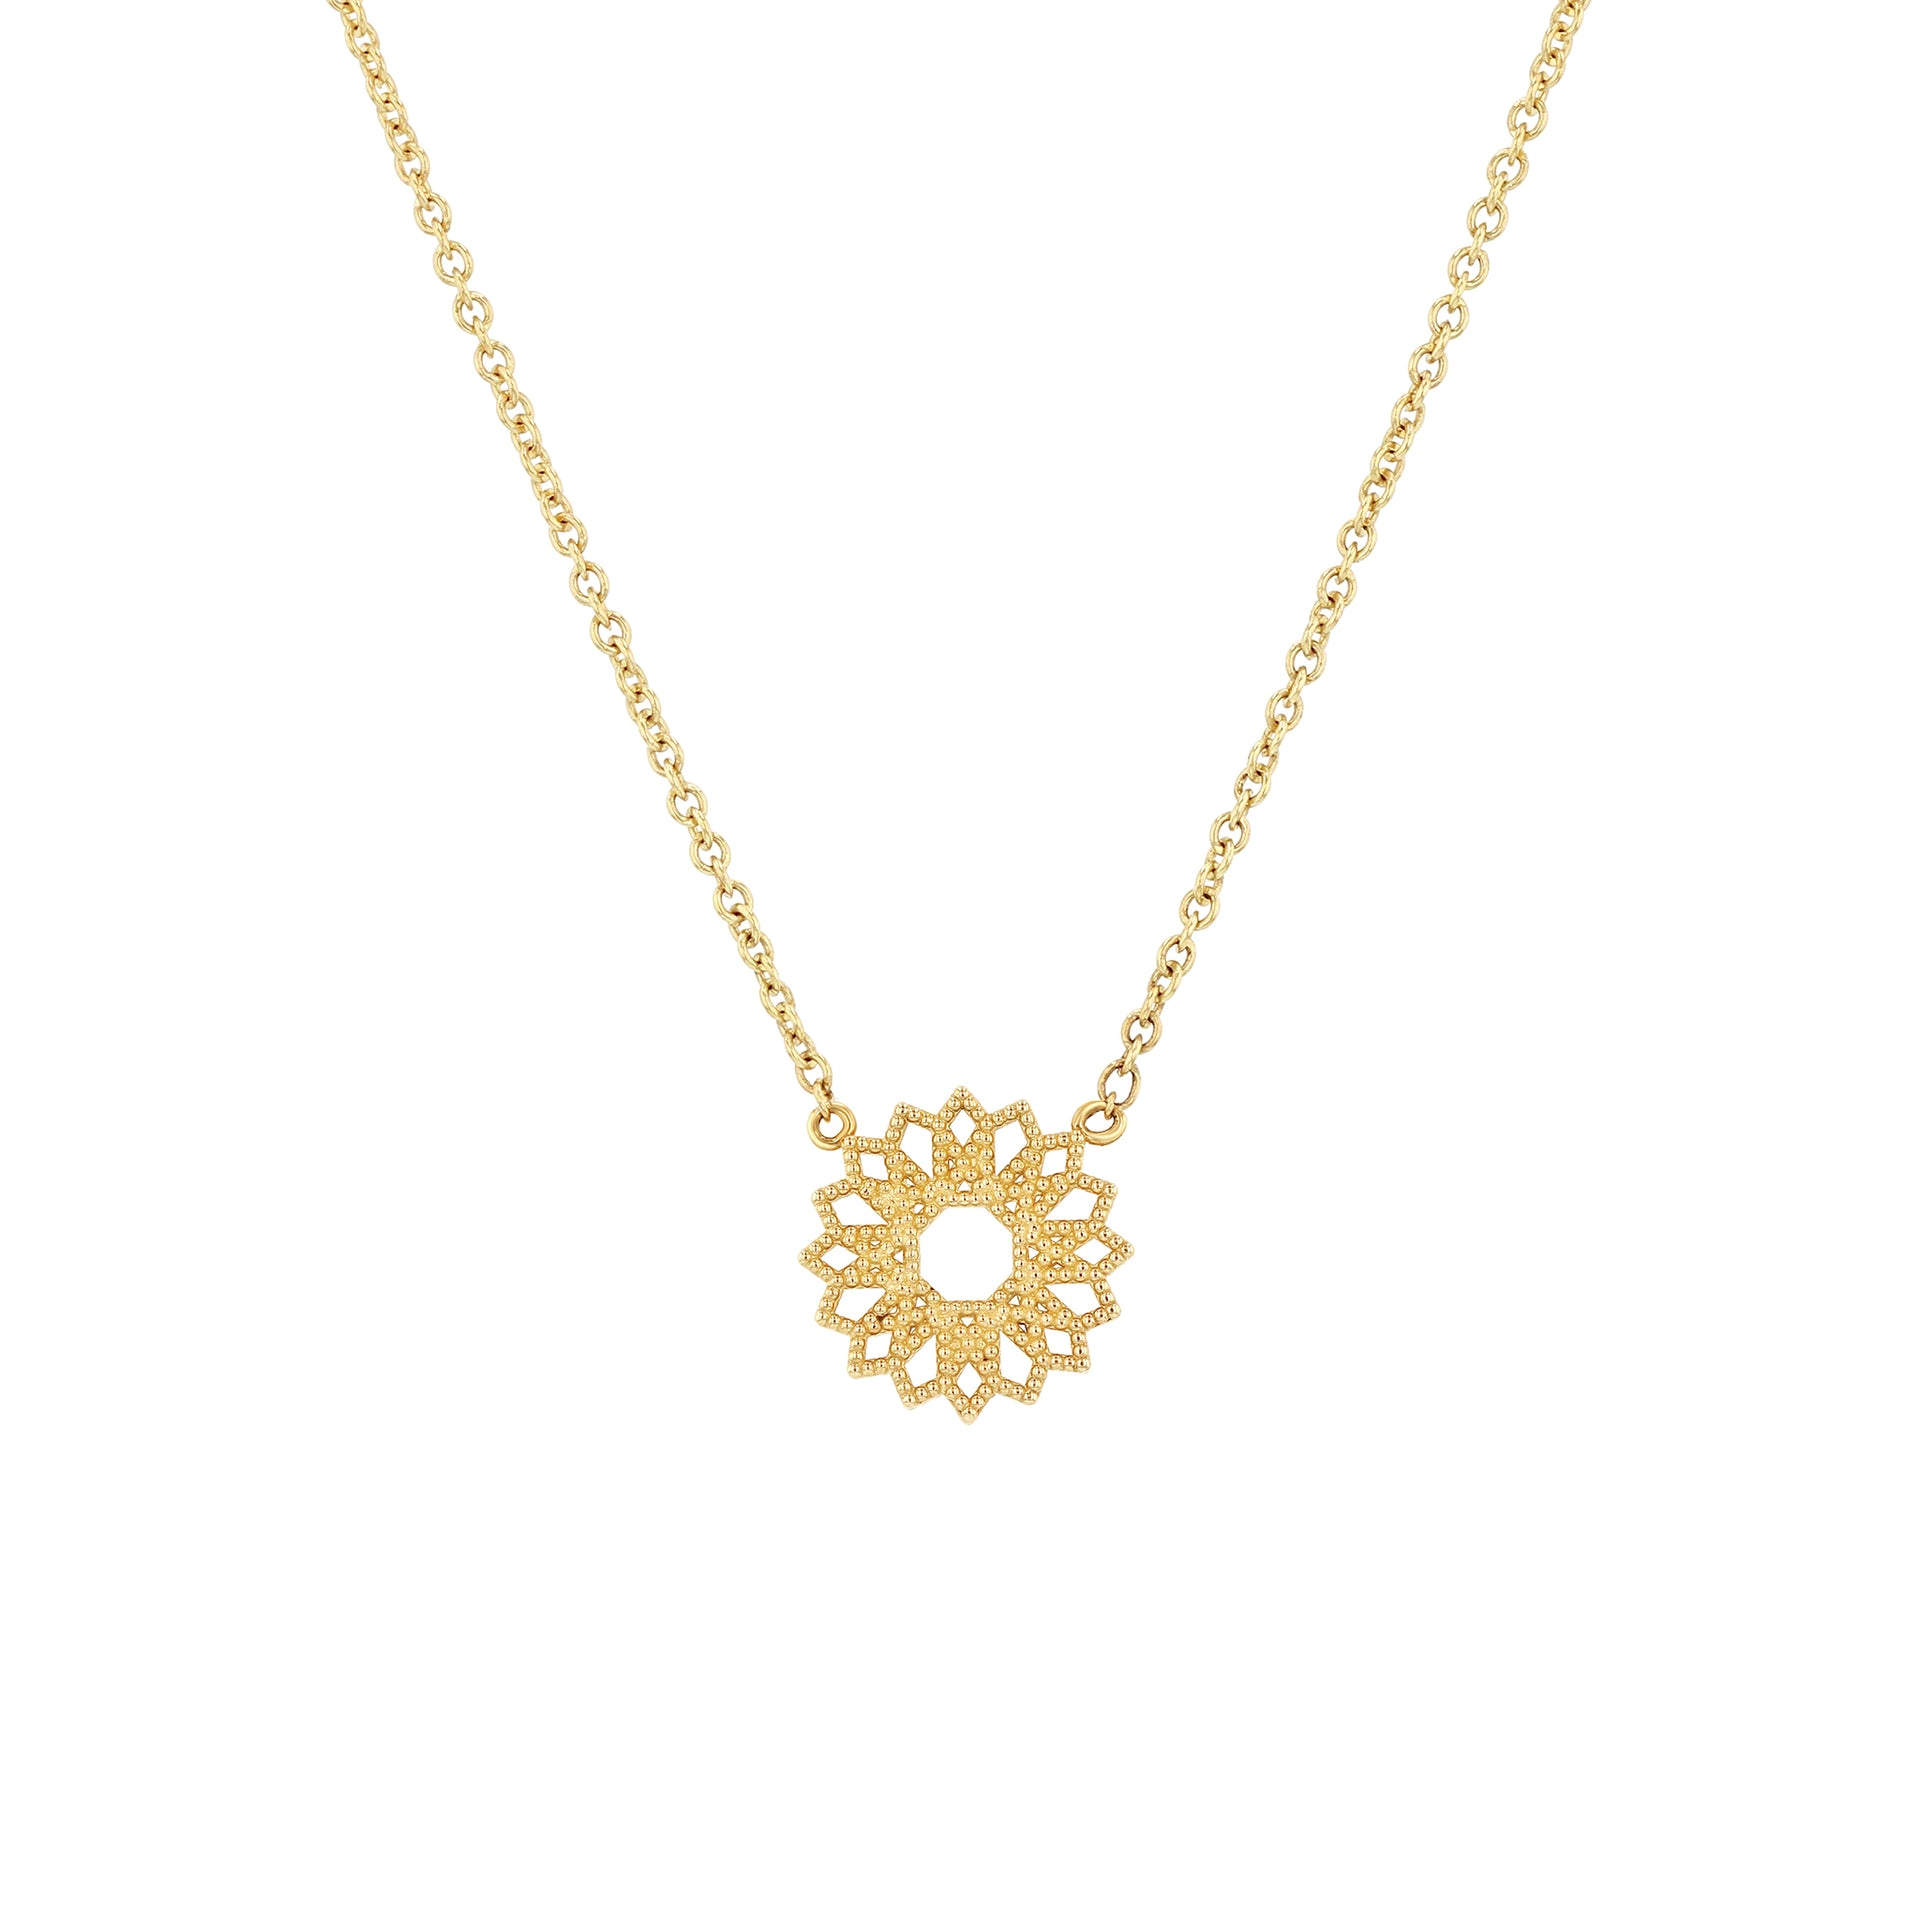 Petite Lace Deco Necklace - VI